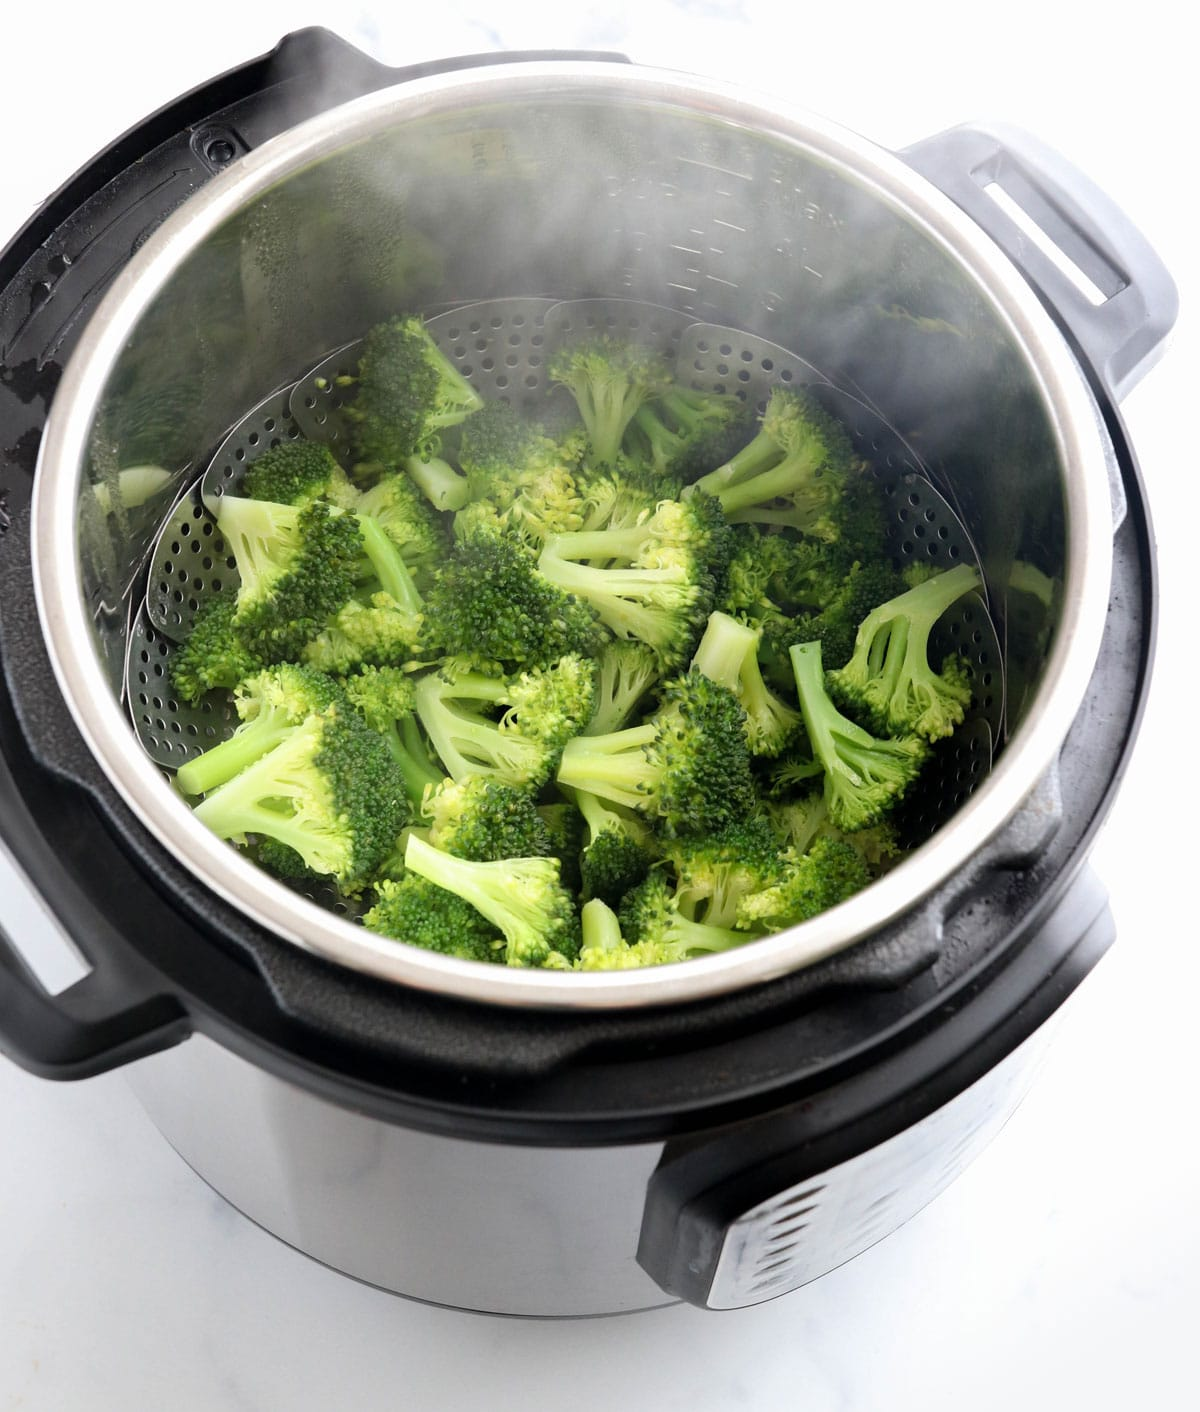 steamed broccoli in the Instant Pot